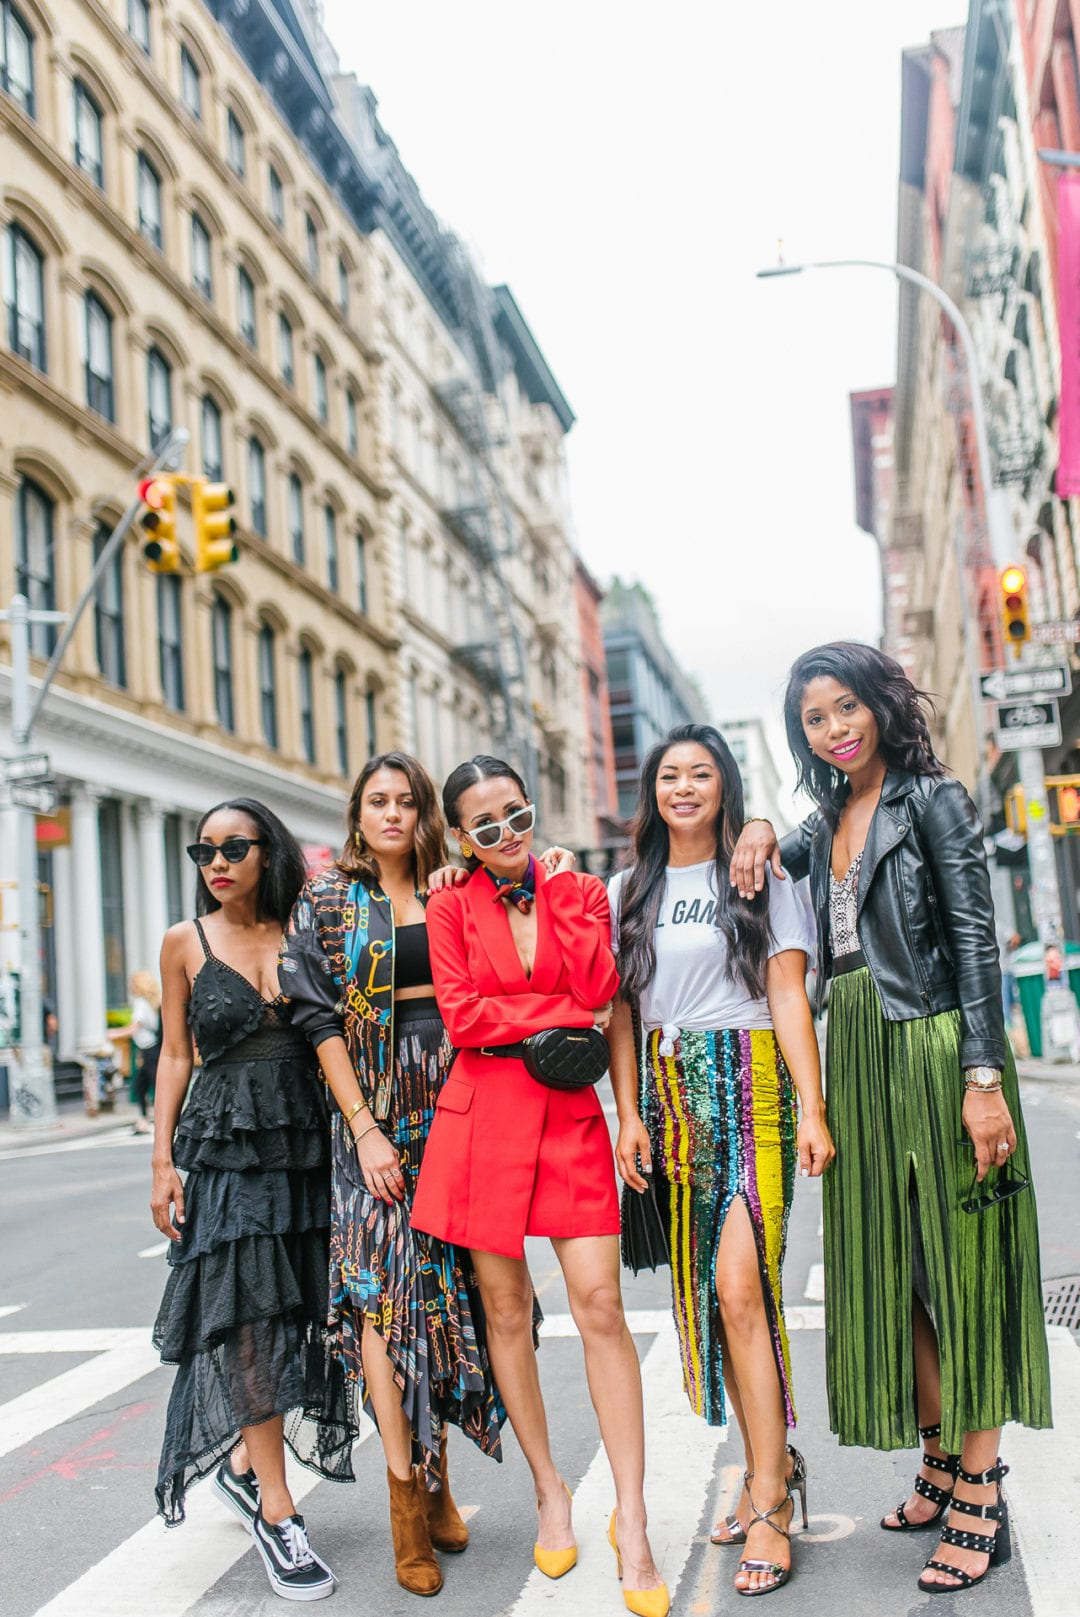 #DSWSTYLESQUAD, NYFW, street style, NYFW outfits, girl gang, boss babes